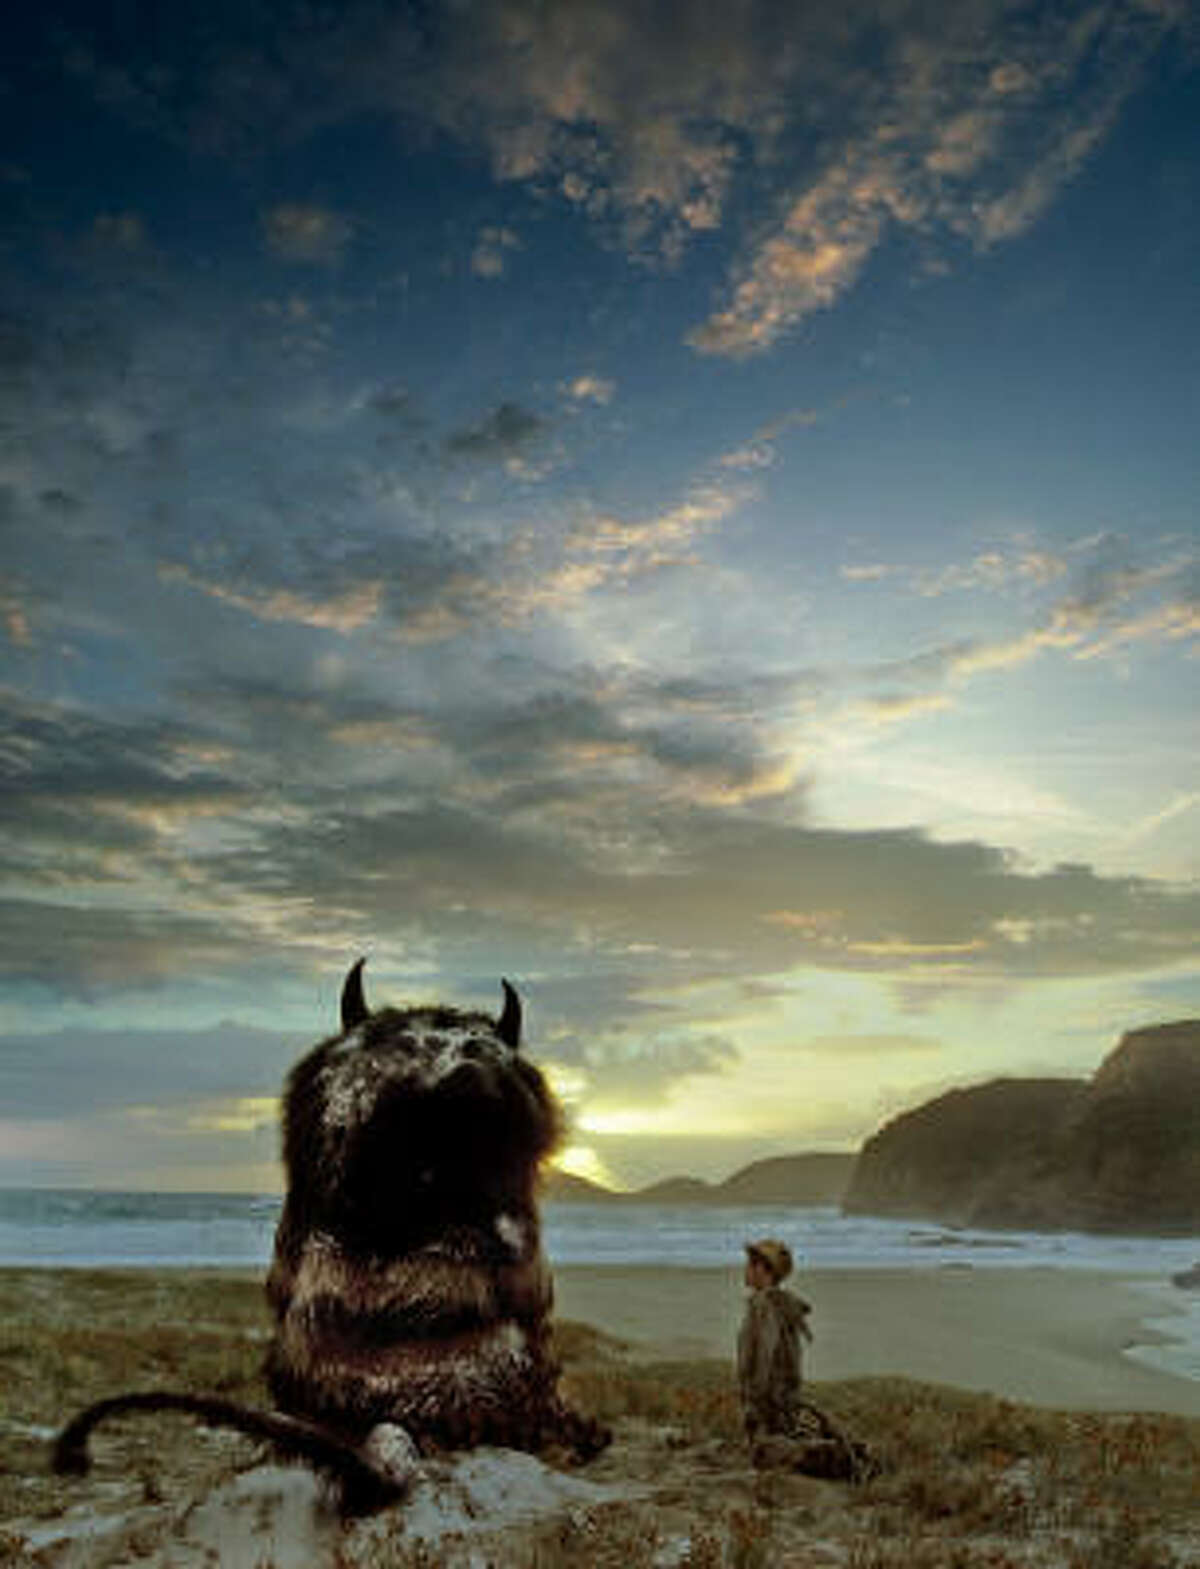 The film adaptation of Maurice Sendak's book, Where the Wild Things Are hits theaters Oct. 16. To see a trailer click here.